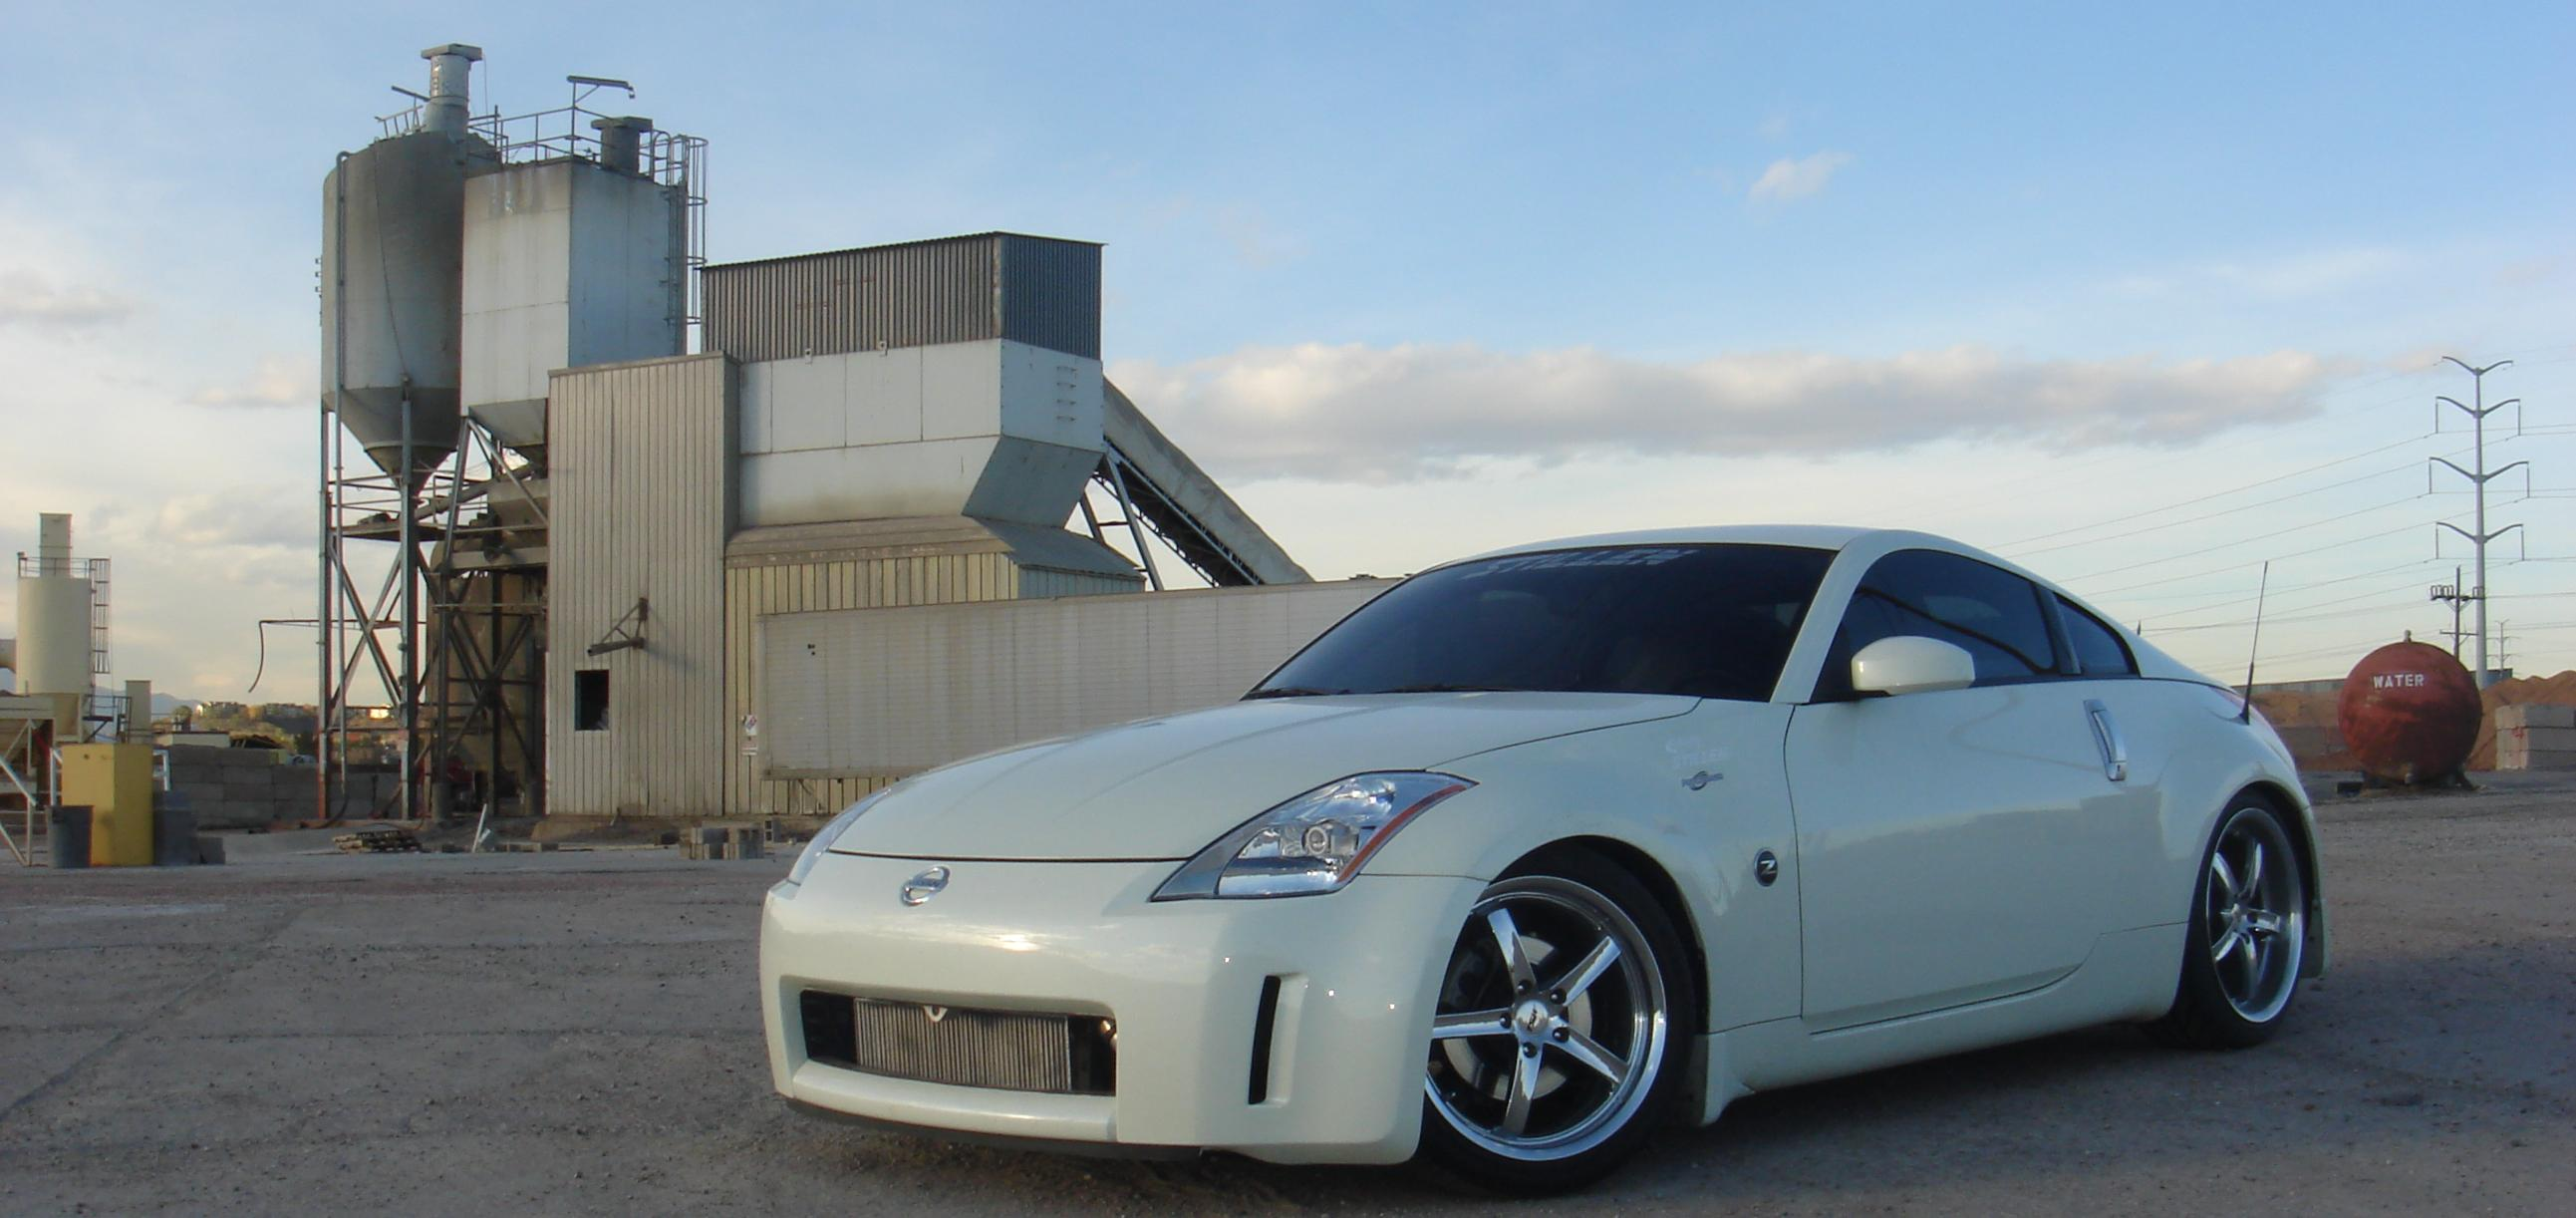 2003 Nissan 350Z Touring Procharger Supercharger